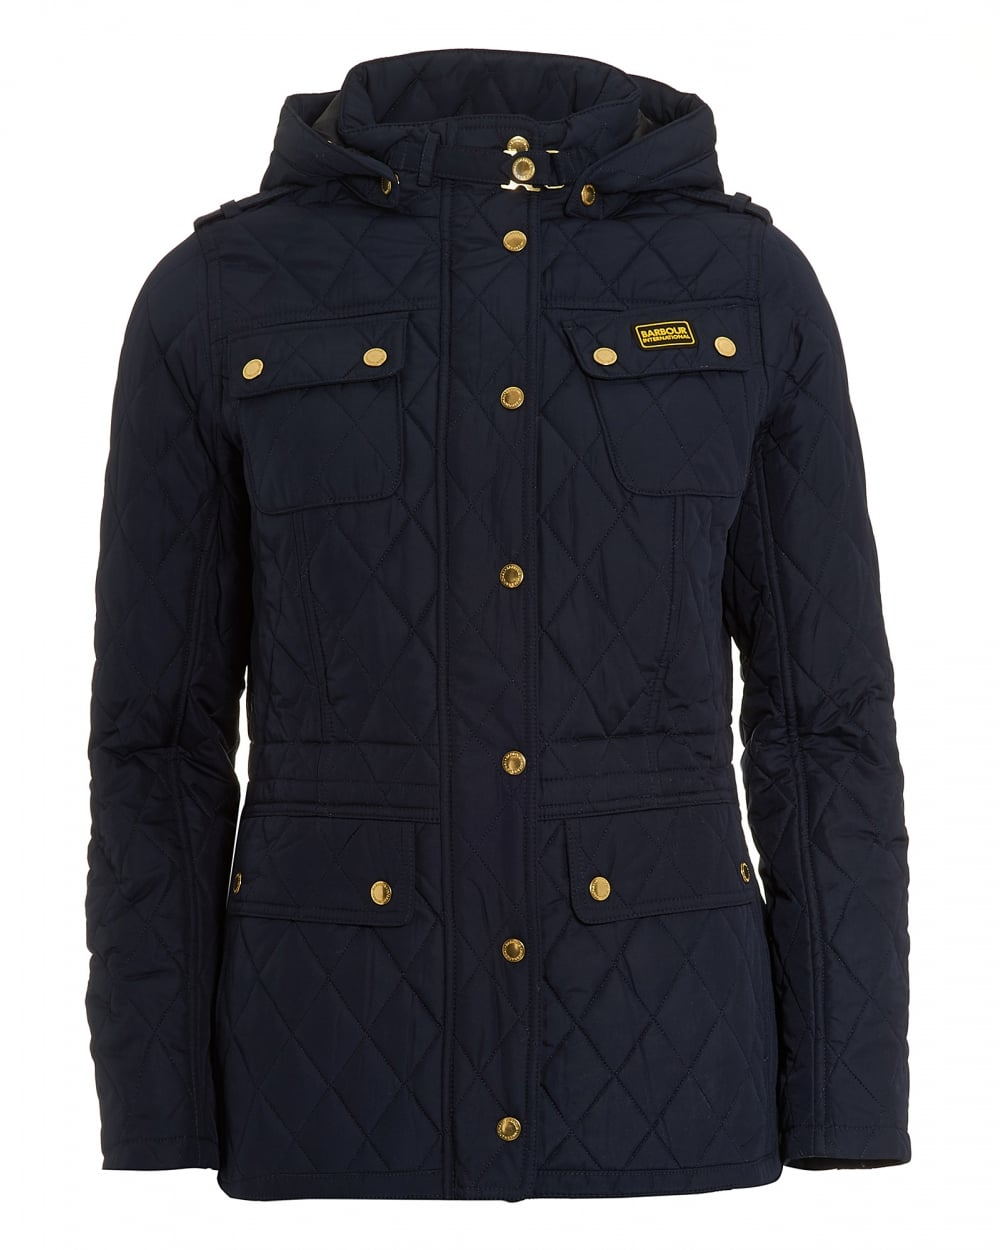 Barbour International Womens Absorber Parka Jacket, Navy Blue Quilted